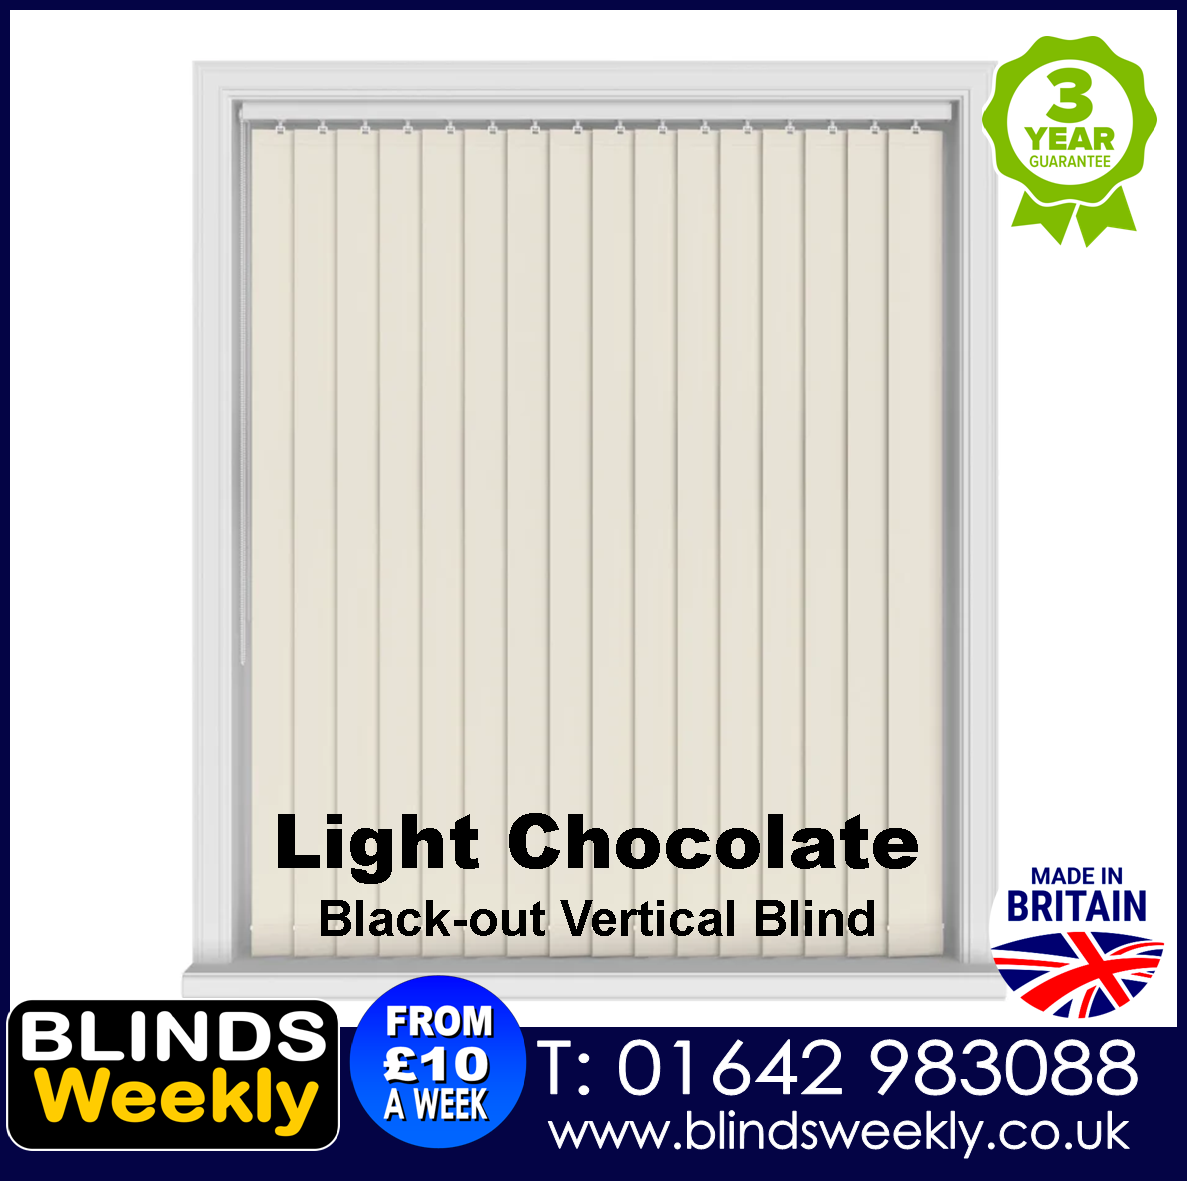 Blinds Weekly Blackout Vertical Blind - Light Chocolate